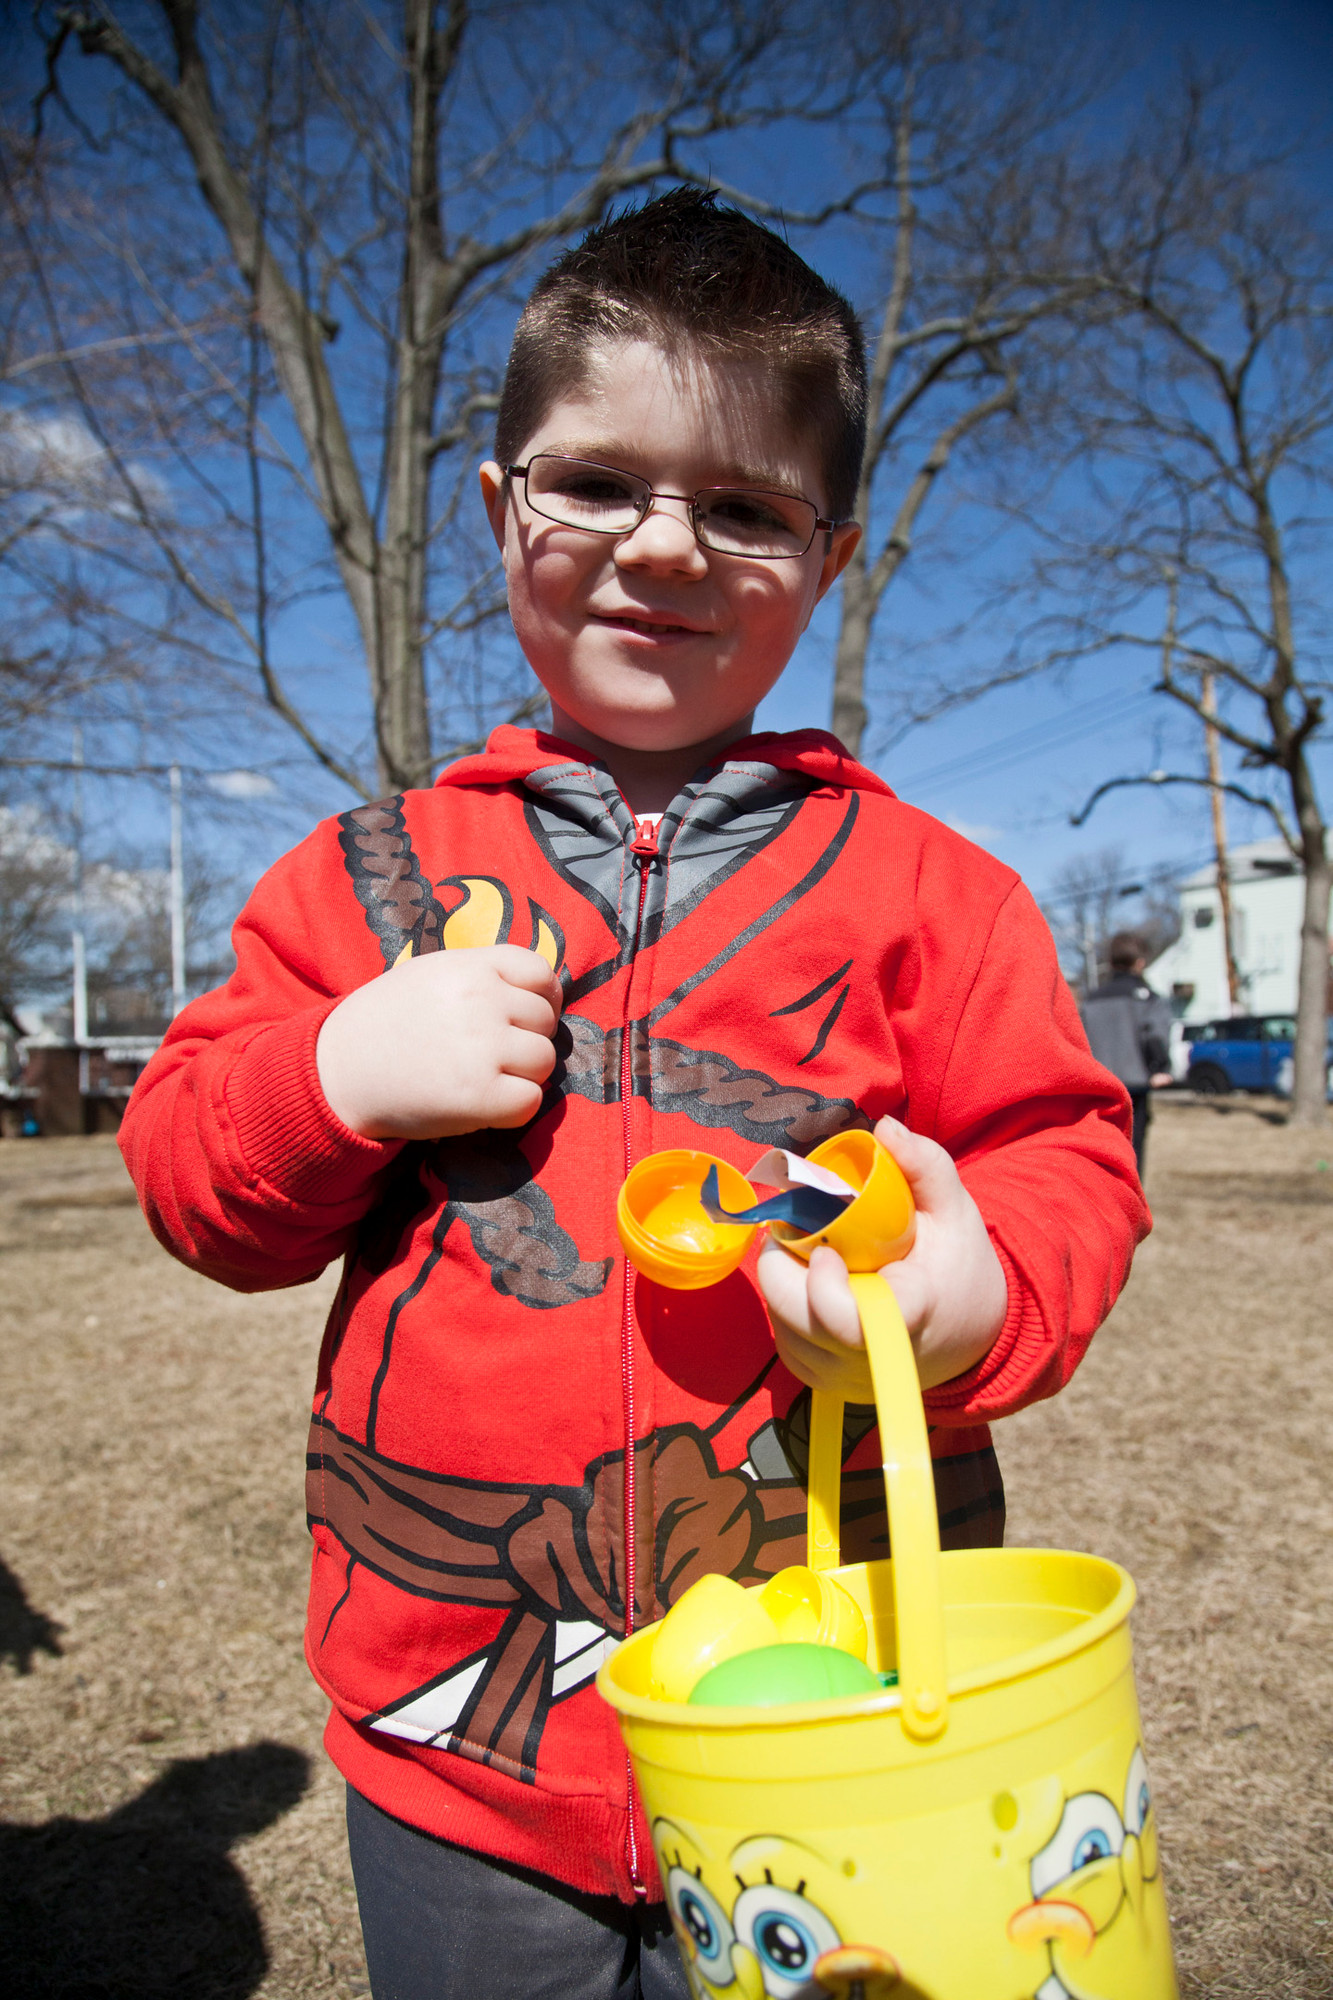 JONA TESCA, 5, found a lucky golden egg during his hunt.